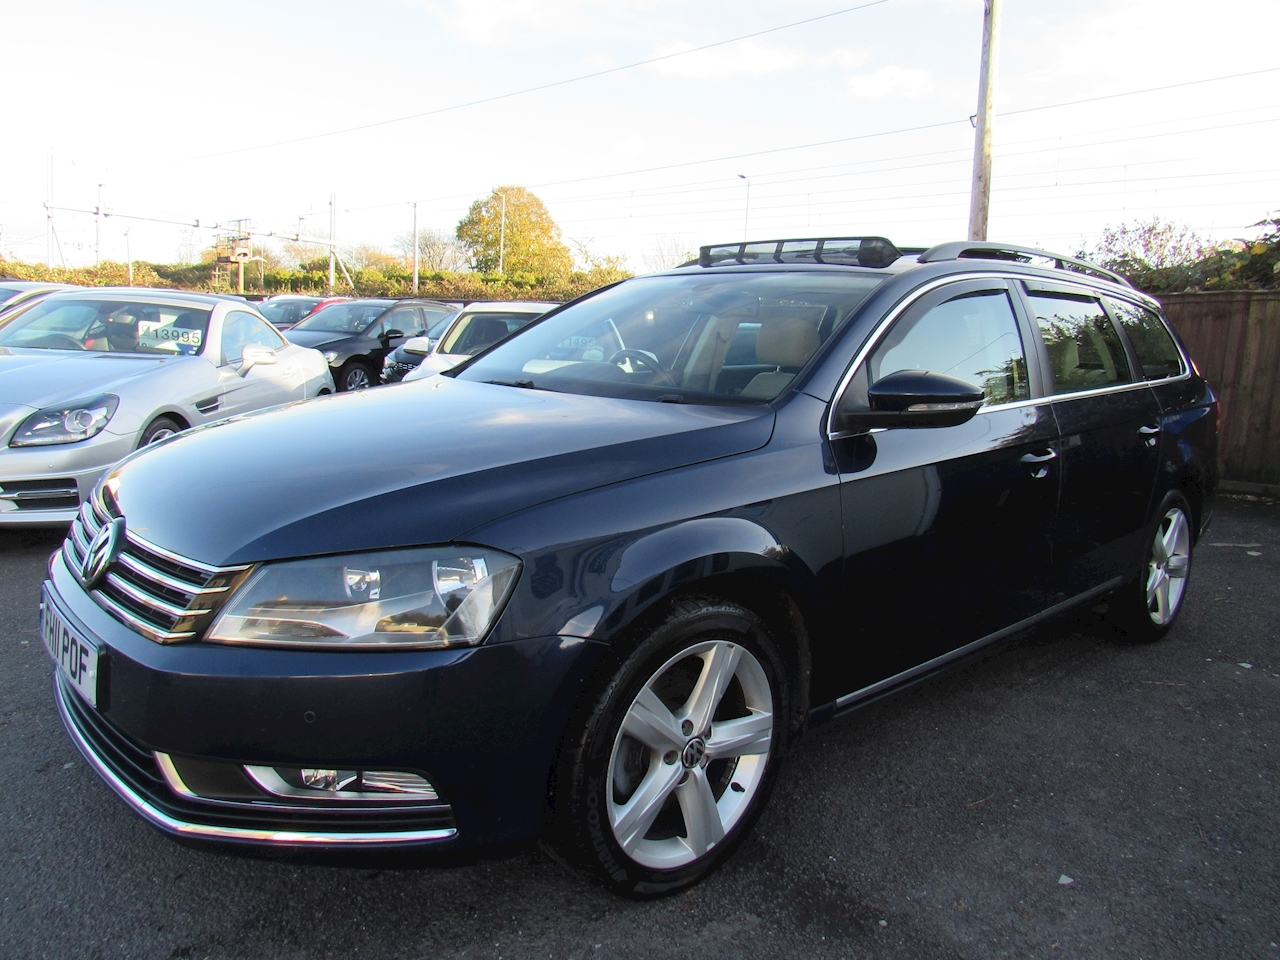 Volkswagen Passat SE Estate 2.0 Manual Diesel